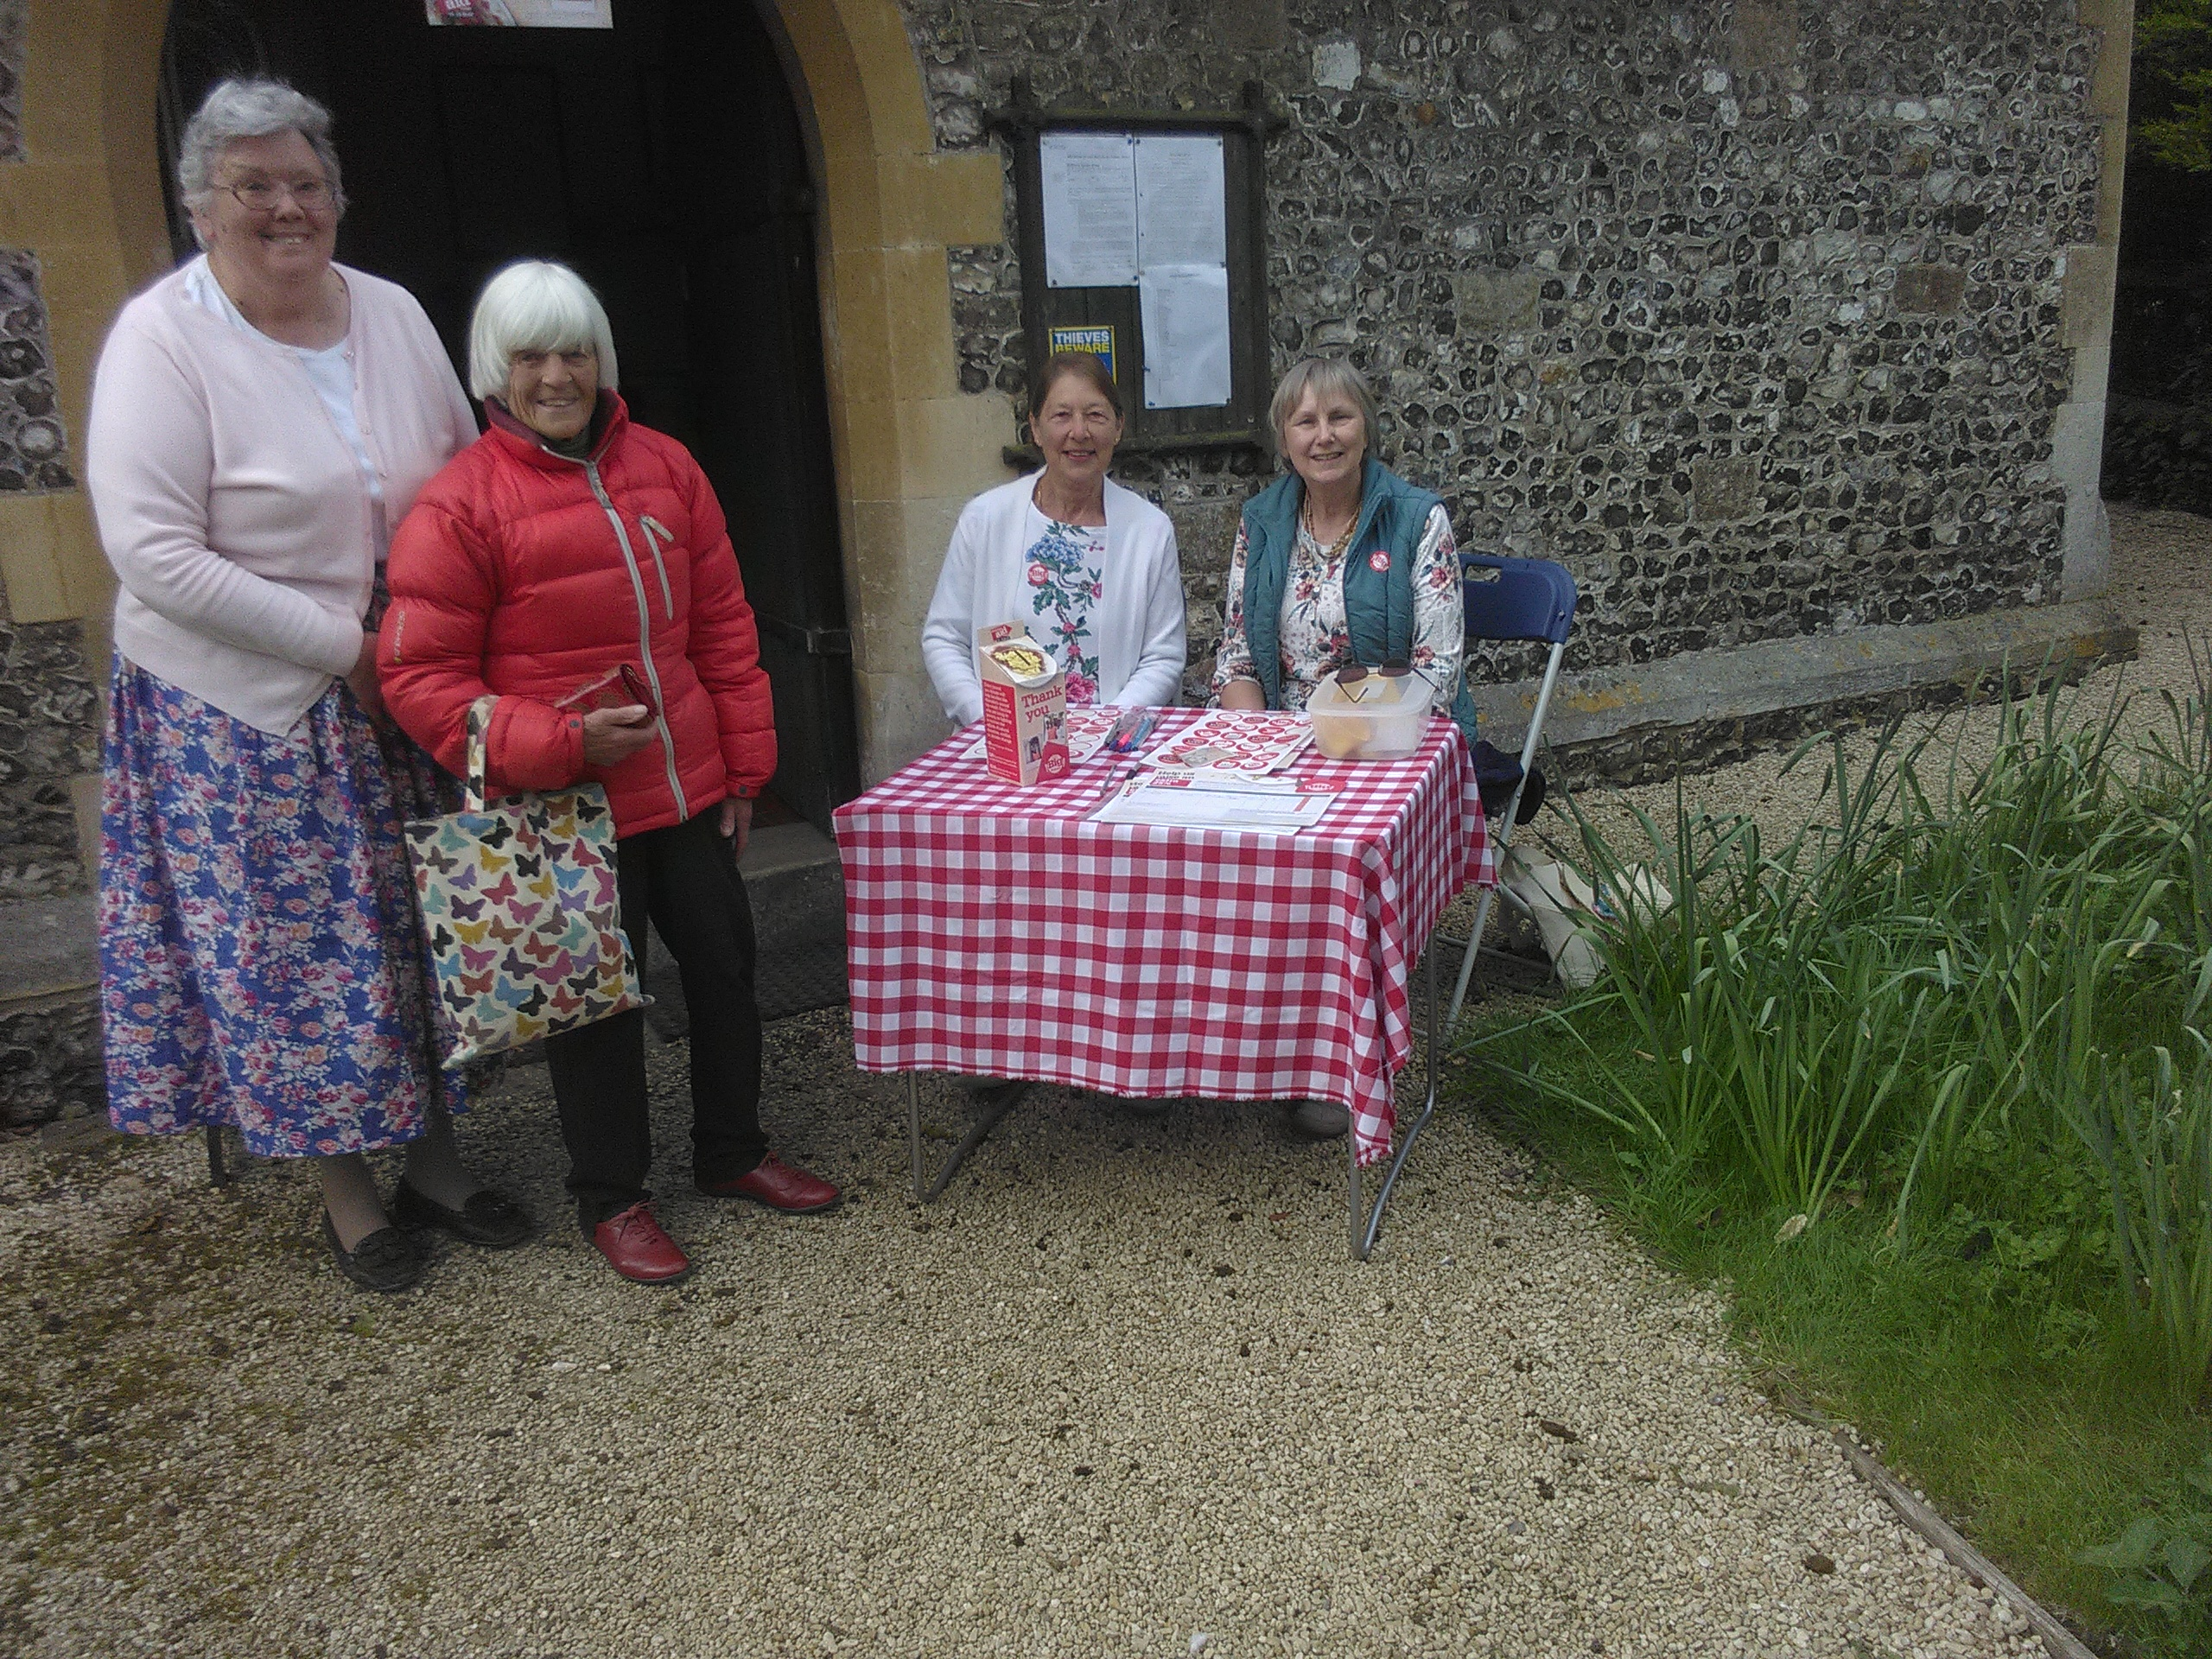 Jill, Val, Cathy and Sandra greeting visitors